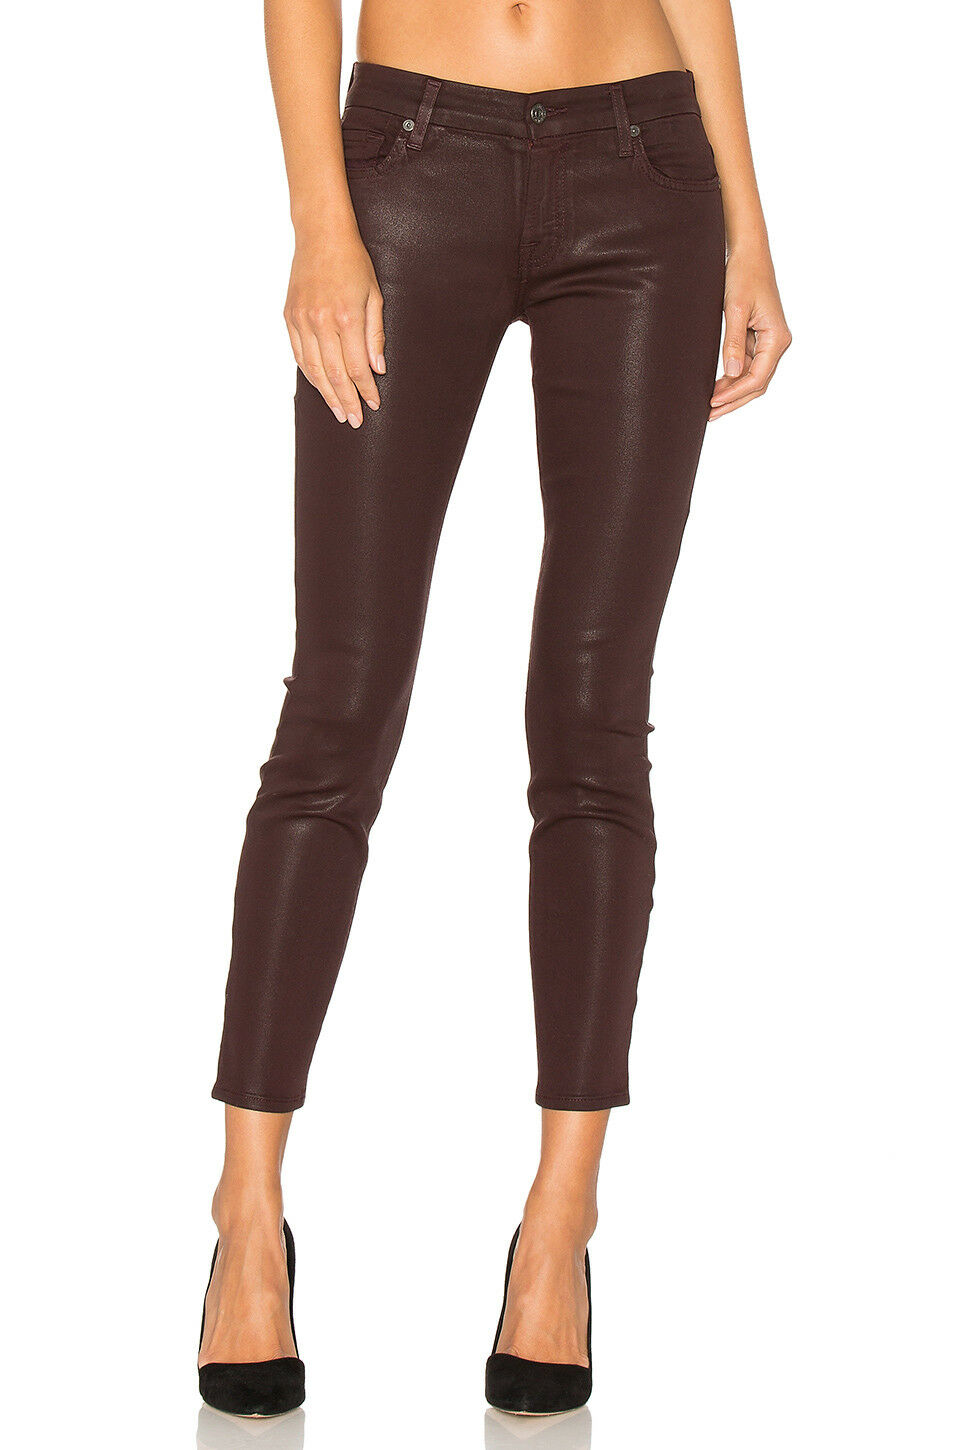 NWT 7 For All Mankind The Ankle Super Skinny [ SZ 32 ]  G228